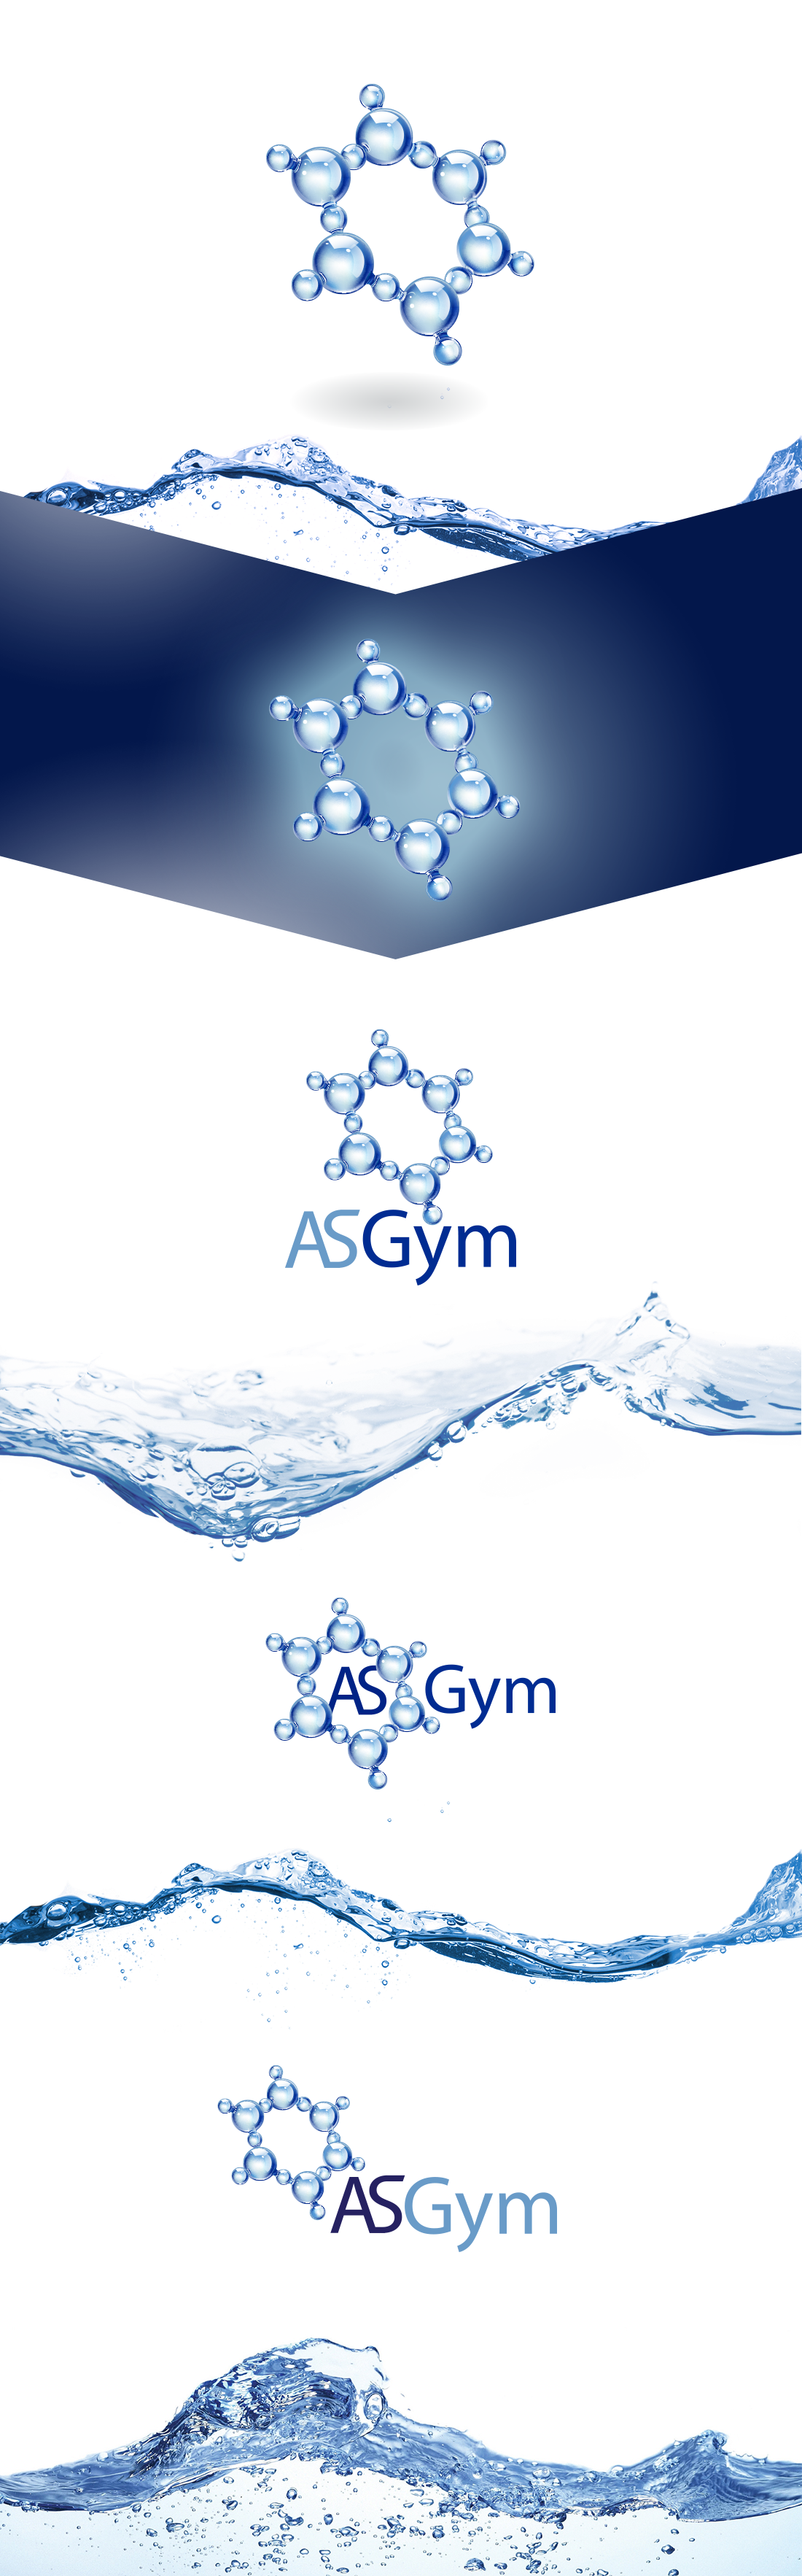 AsGym